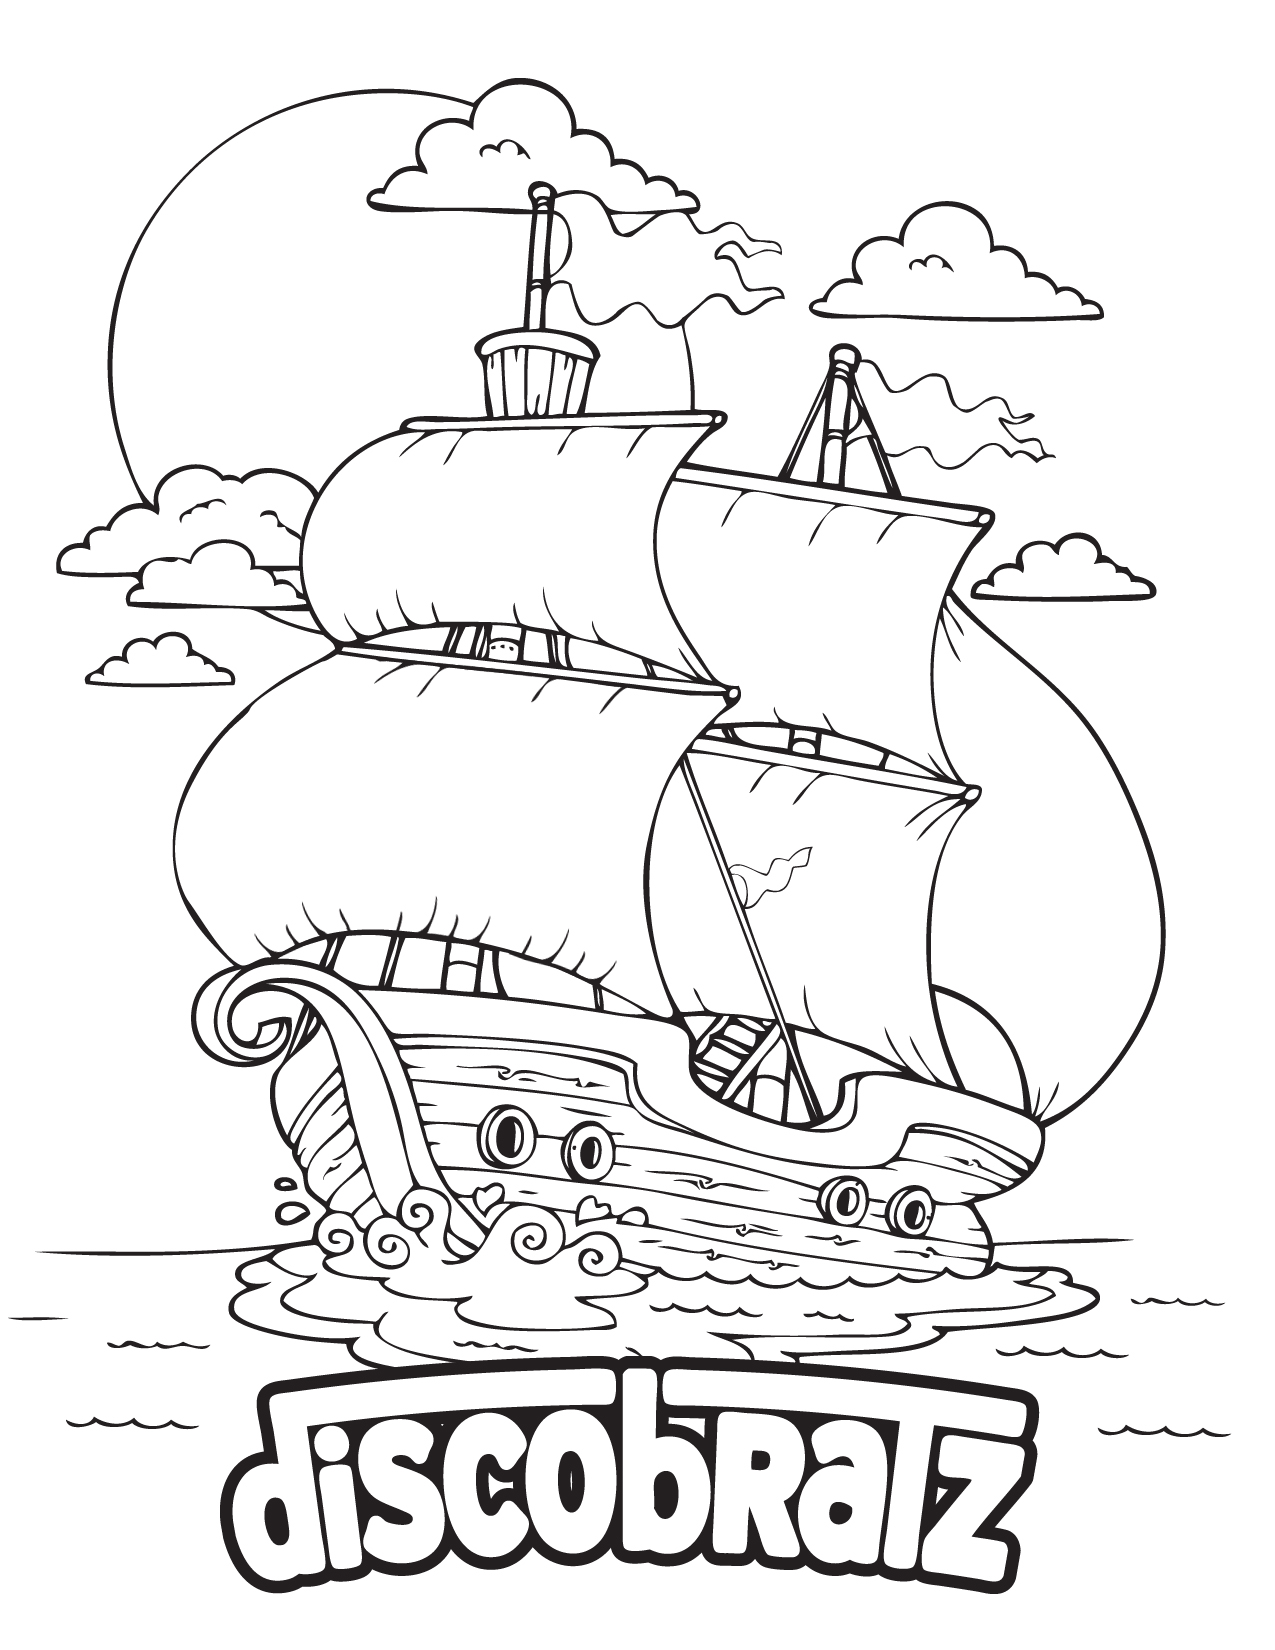 DiscoBratz Presents the Mayflower Coloring Page